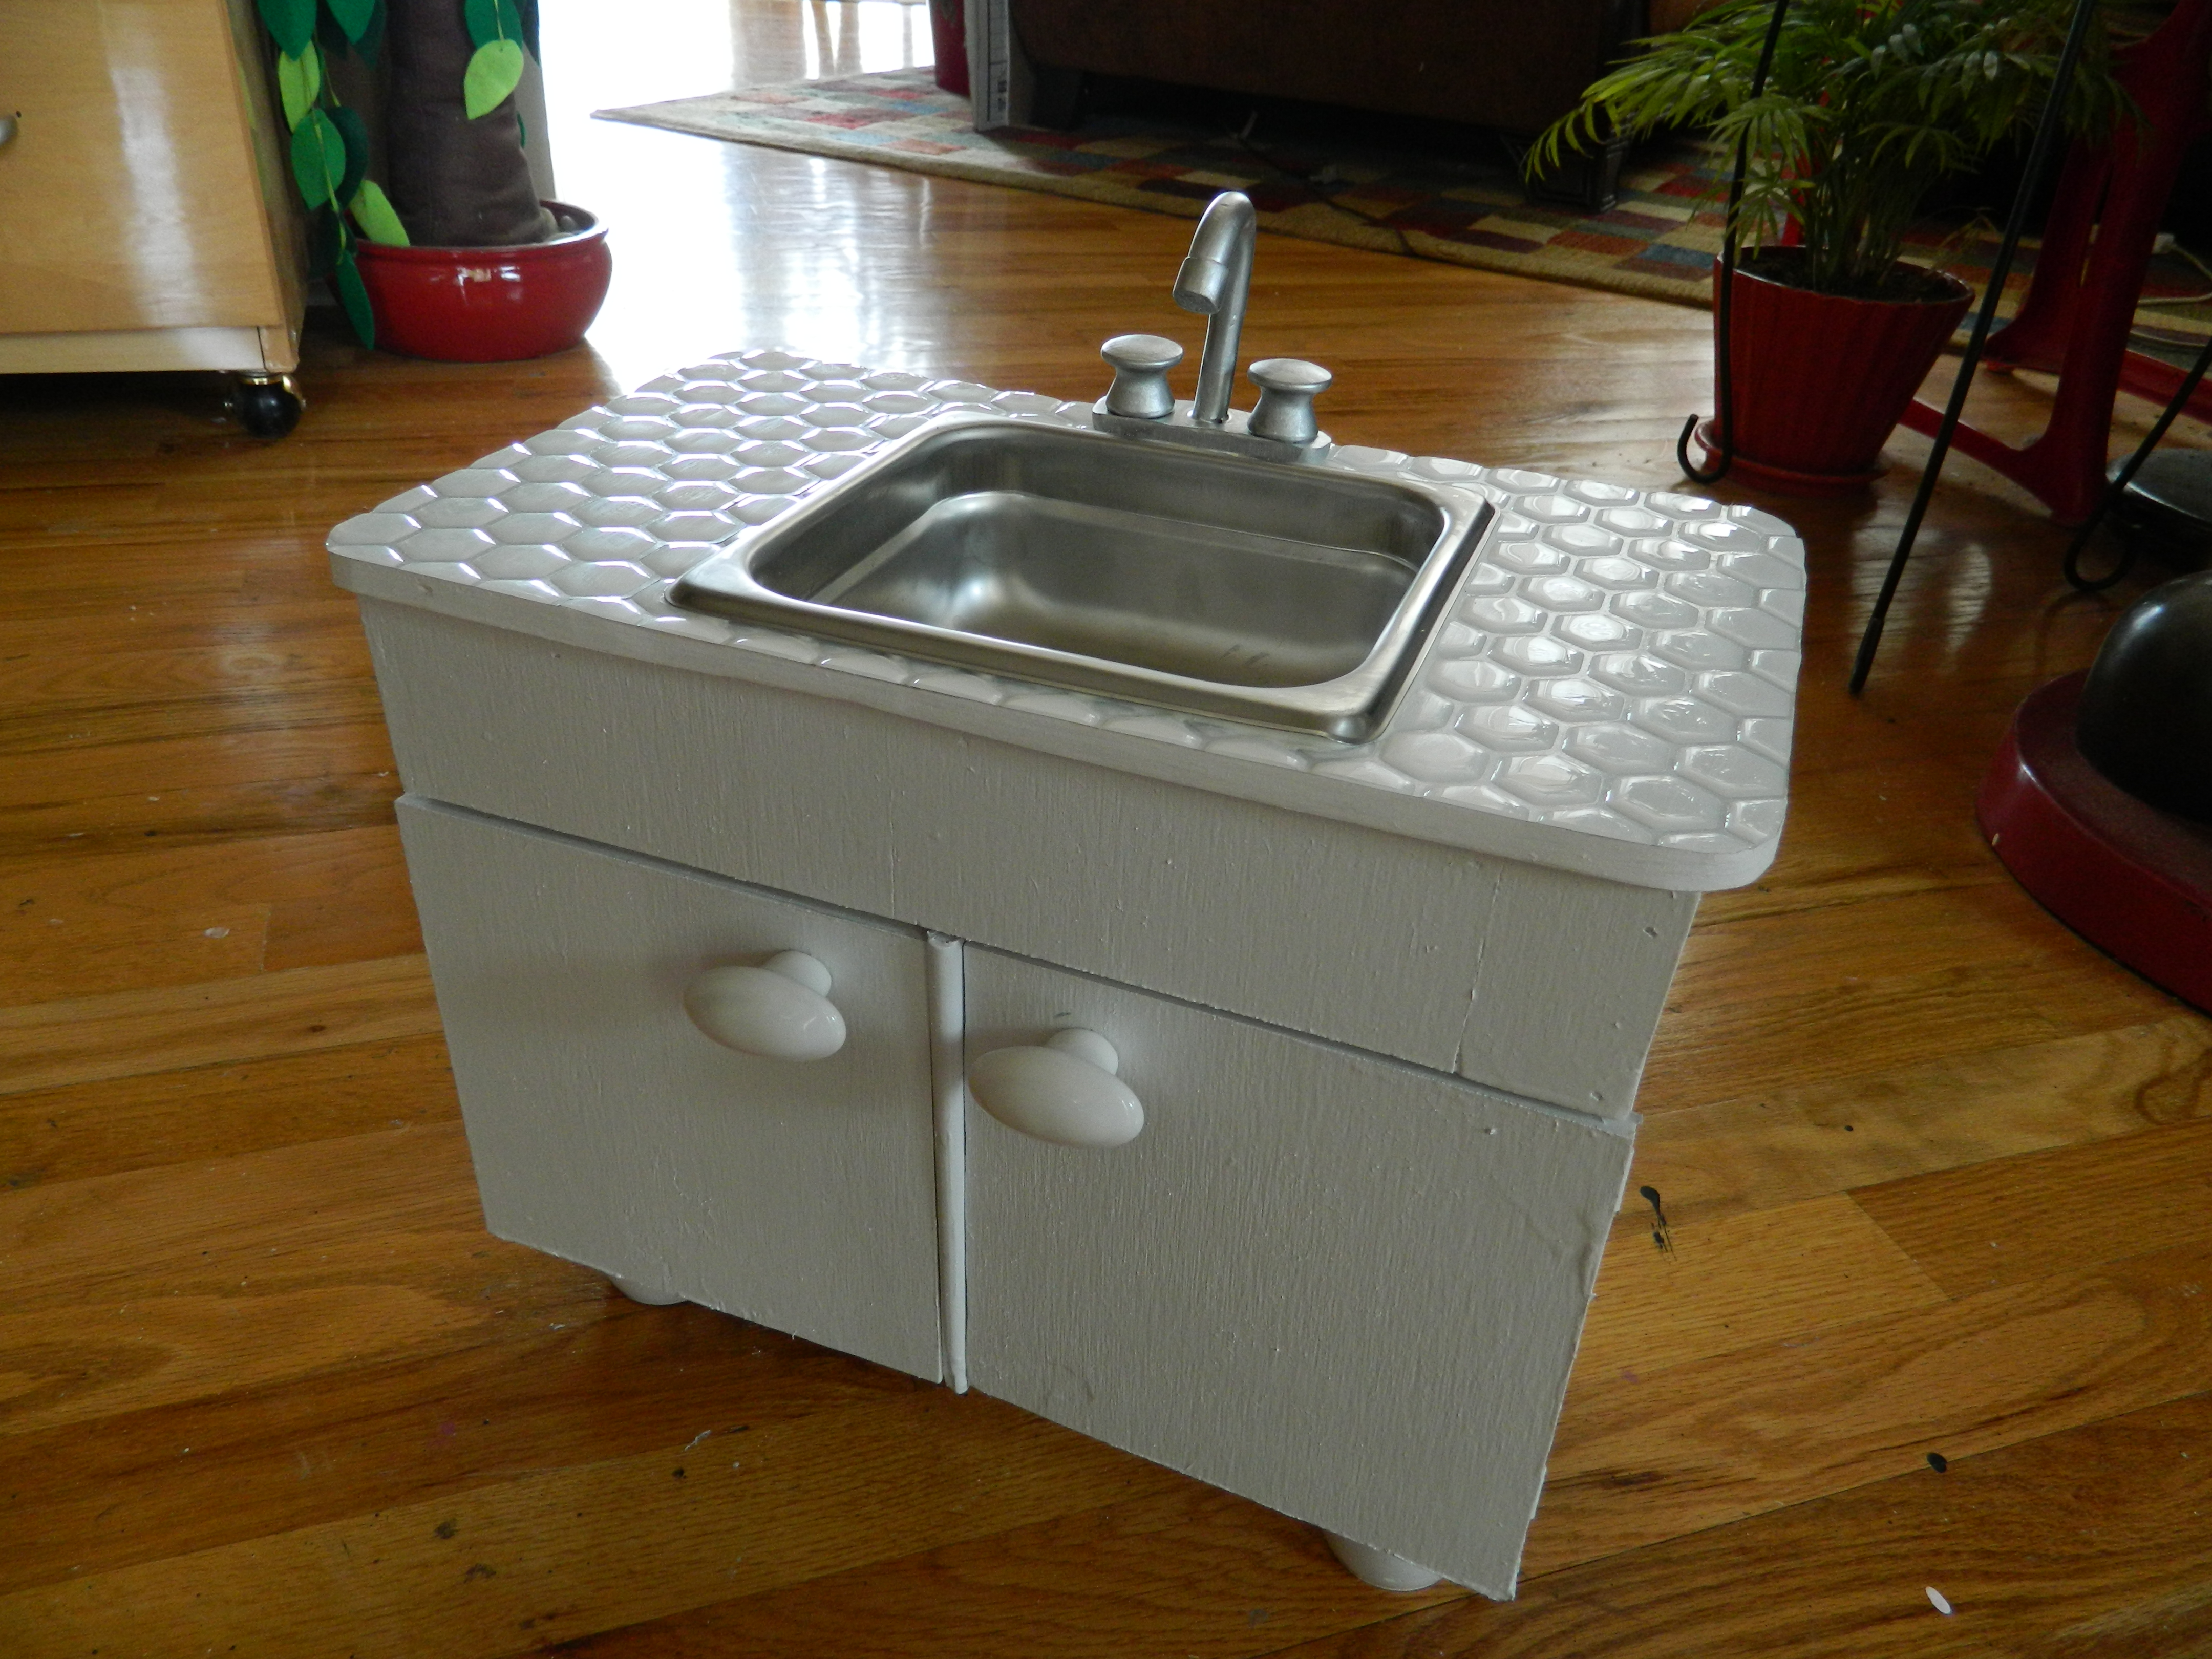 American Made Kitchen Sinks Doll House Sink Cabinet And The First Food Items On My Creative Side